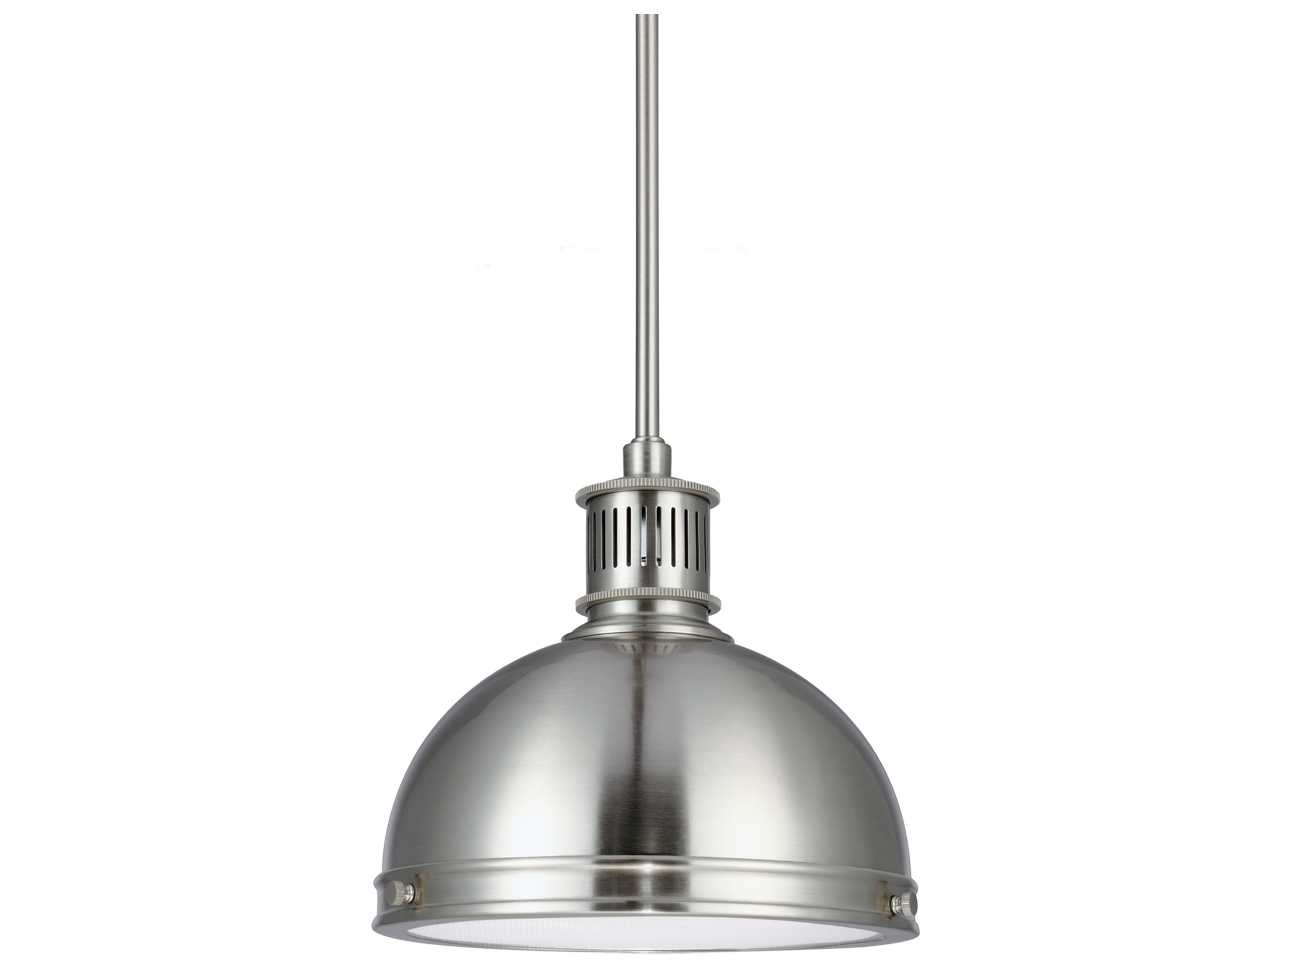 Sea Gull Lighting Pratt Street Metal Brushed Nickel 9 5 39 39 Wide Fluore